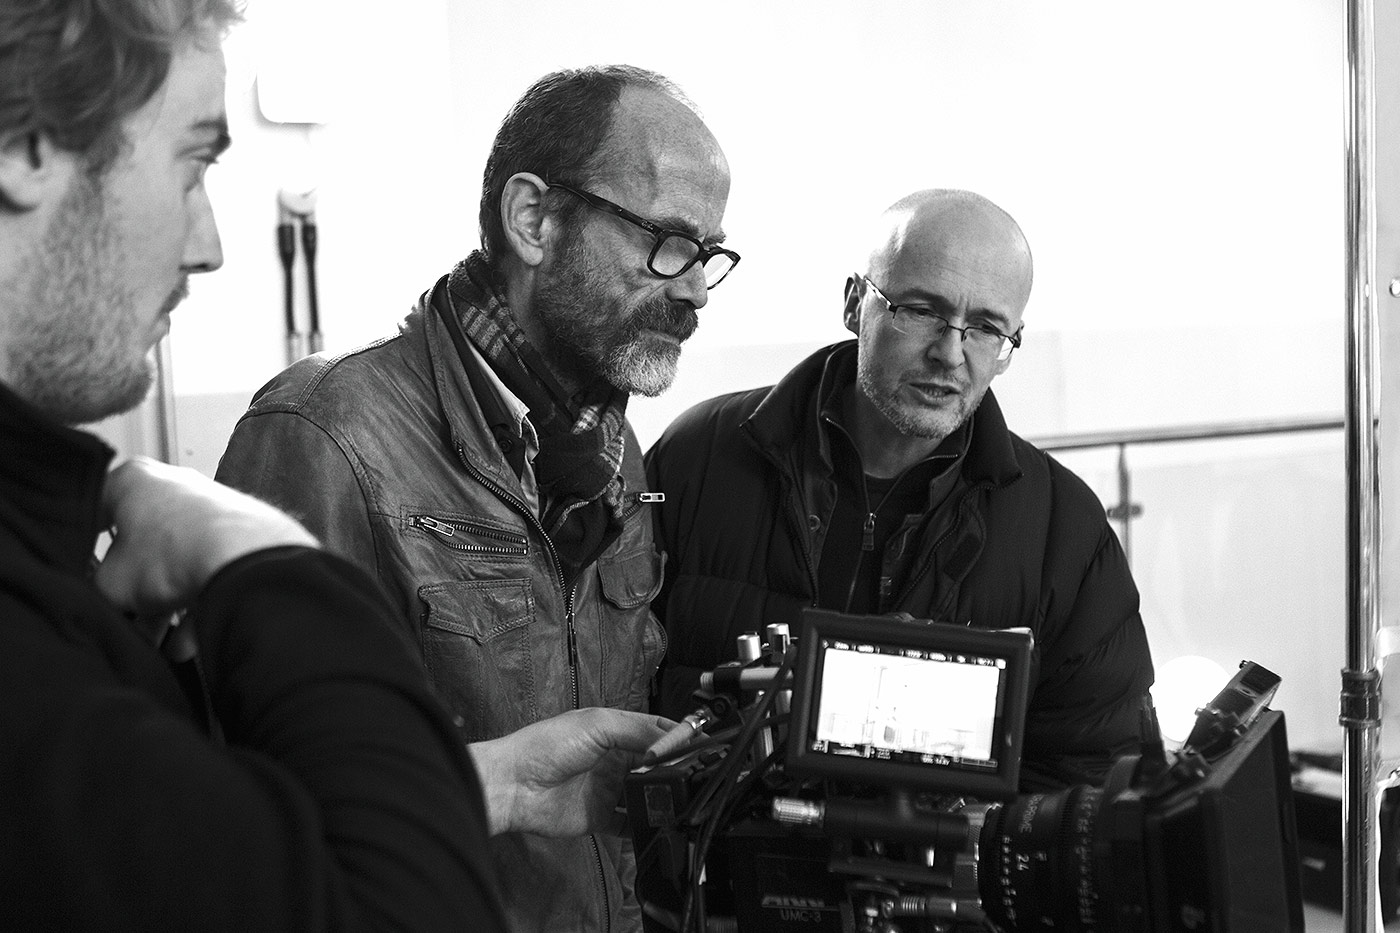 Simon Pummell (right) on the set of Identicals